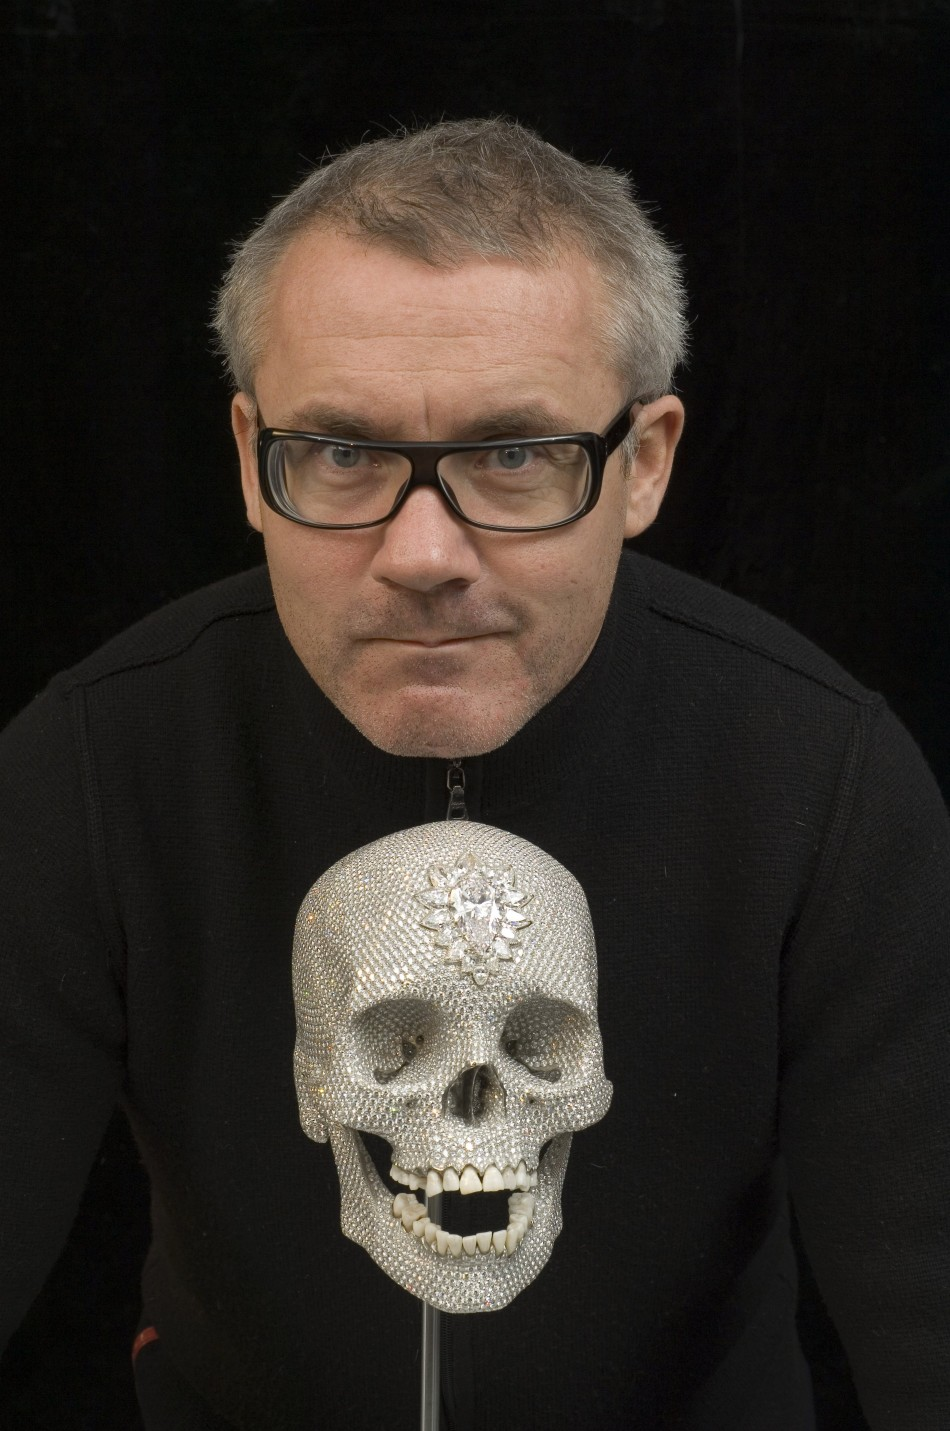 British artist Damien Hirst poses with 'For the love of God'.